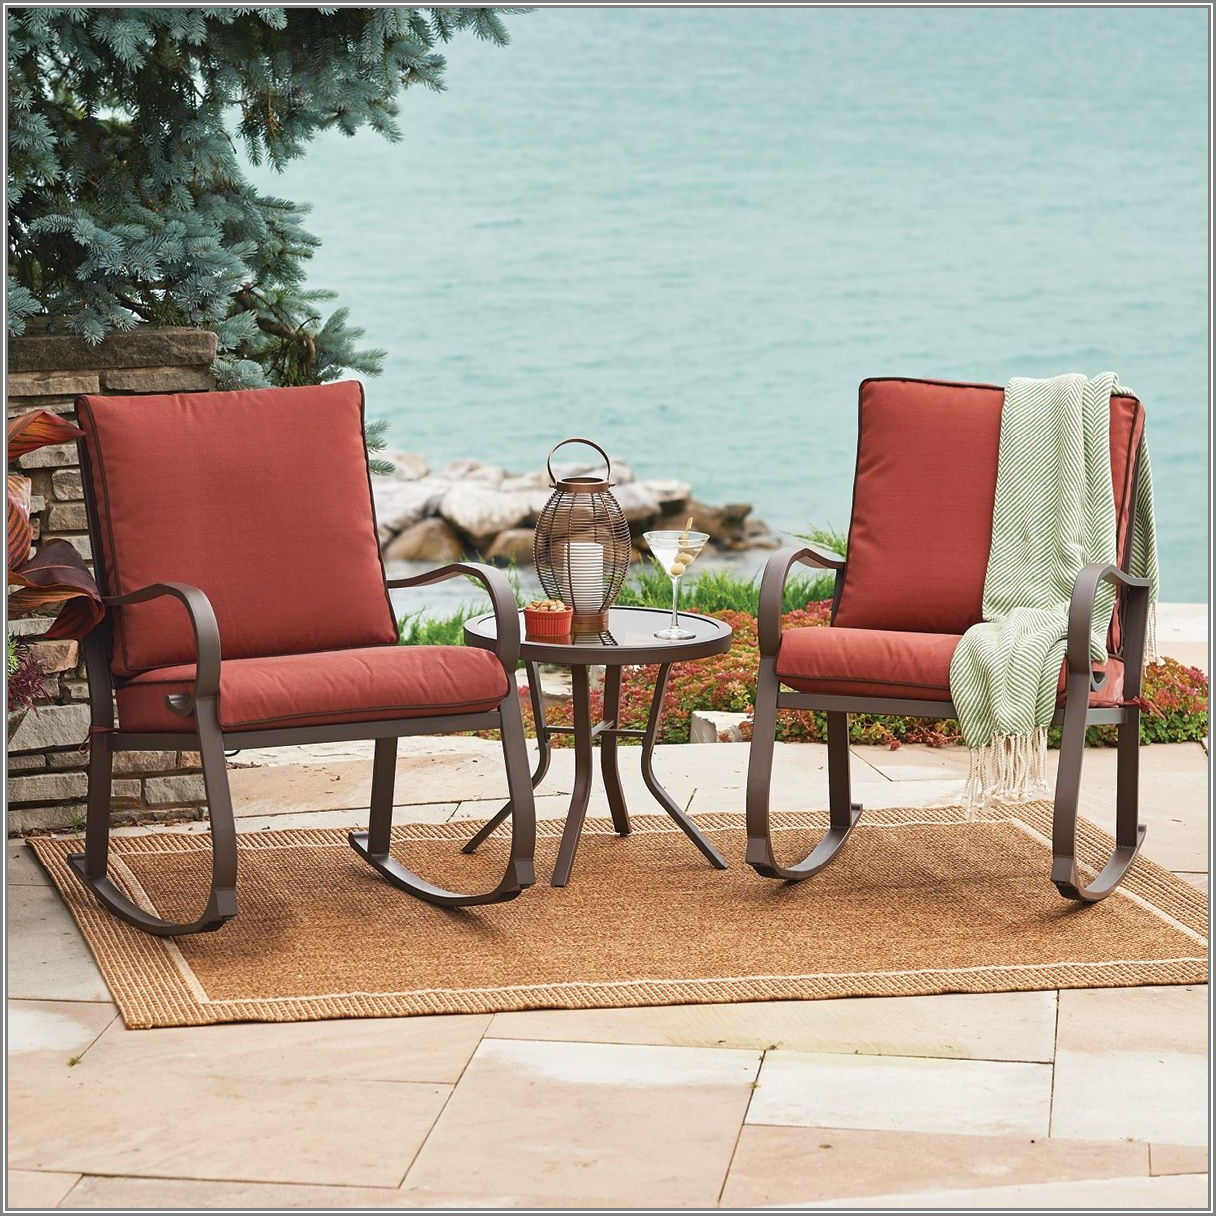 Four Seasons Courtyard Patio Set